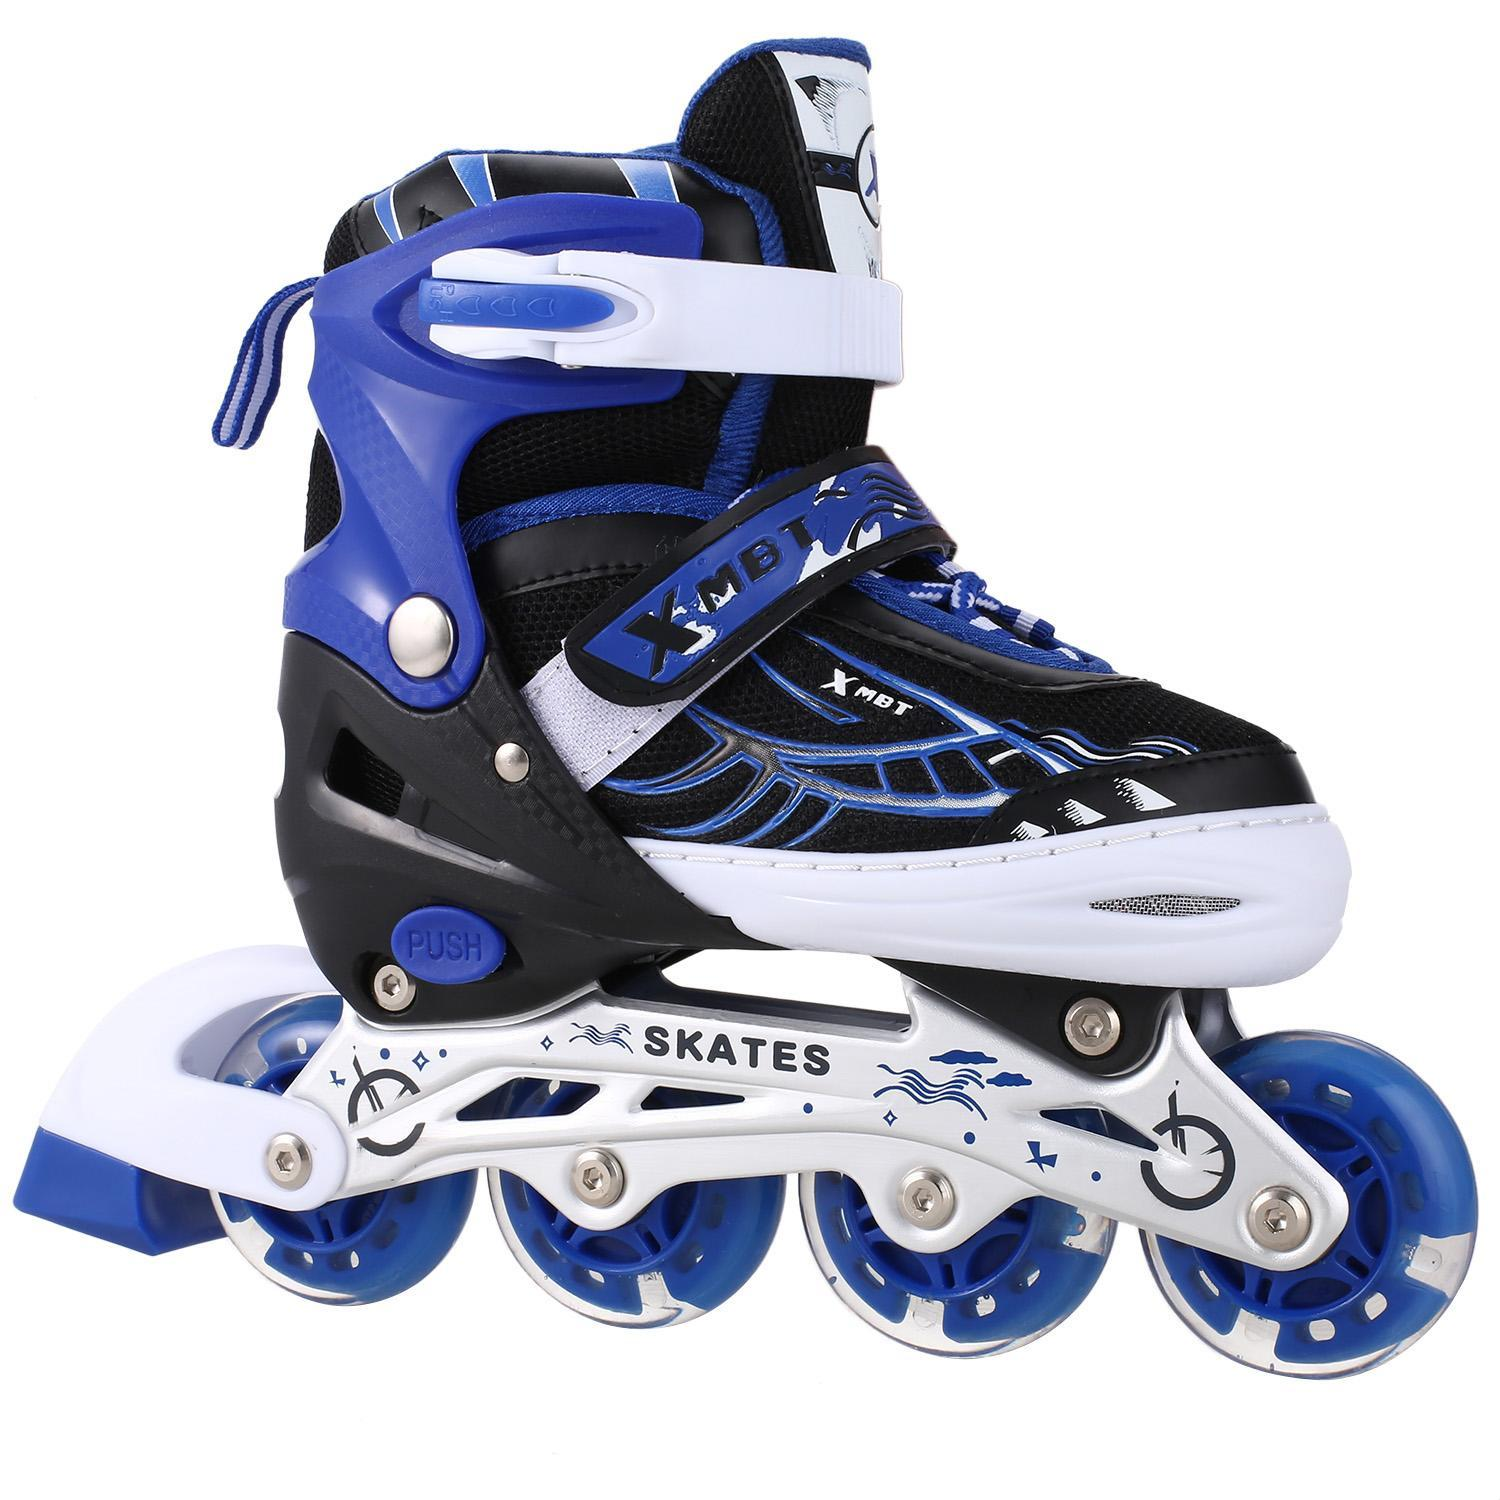 Adjustable Inline Skates for Kids, Featuring Illuminating Front Wheels, Awesome-looking, Safe and Durable Rollerblades, Latest Stylish Design, Perfect for Boys and Girls